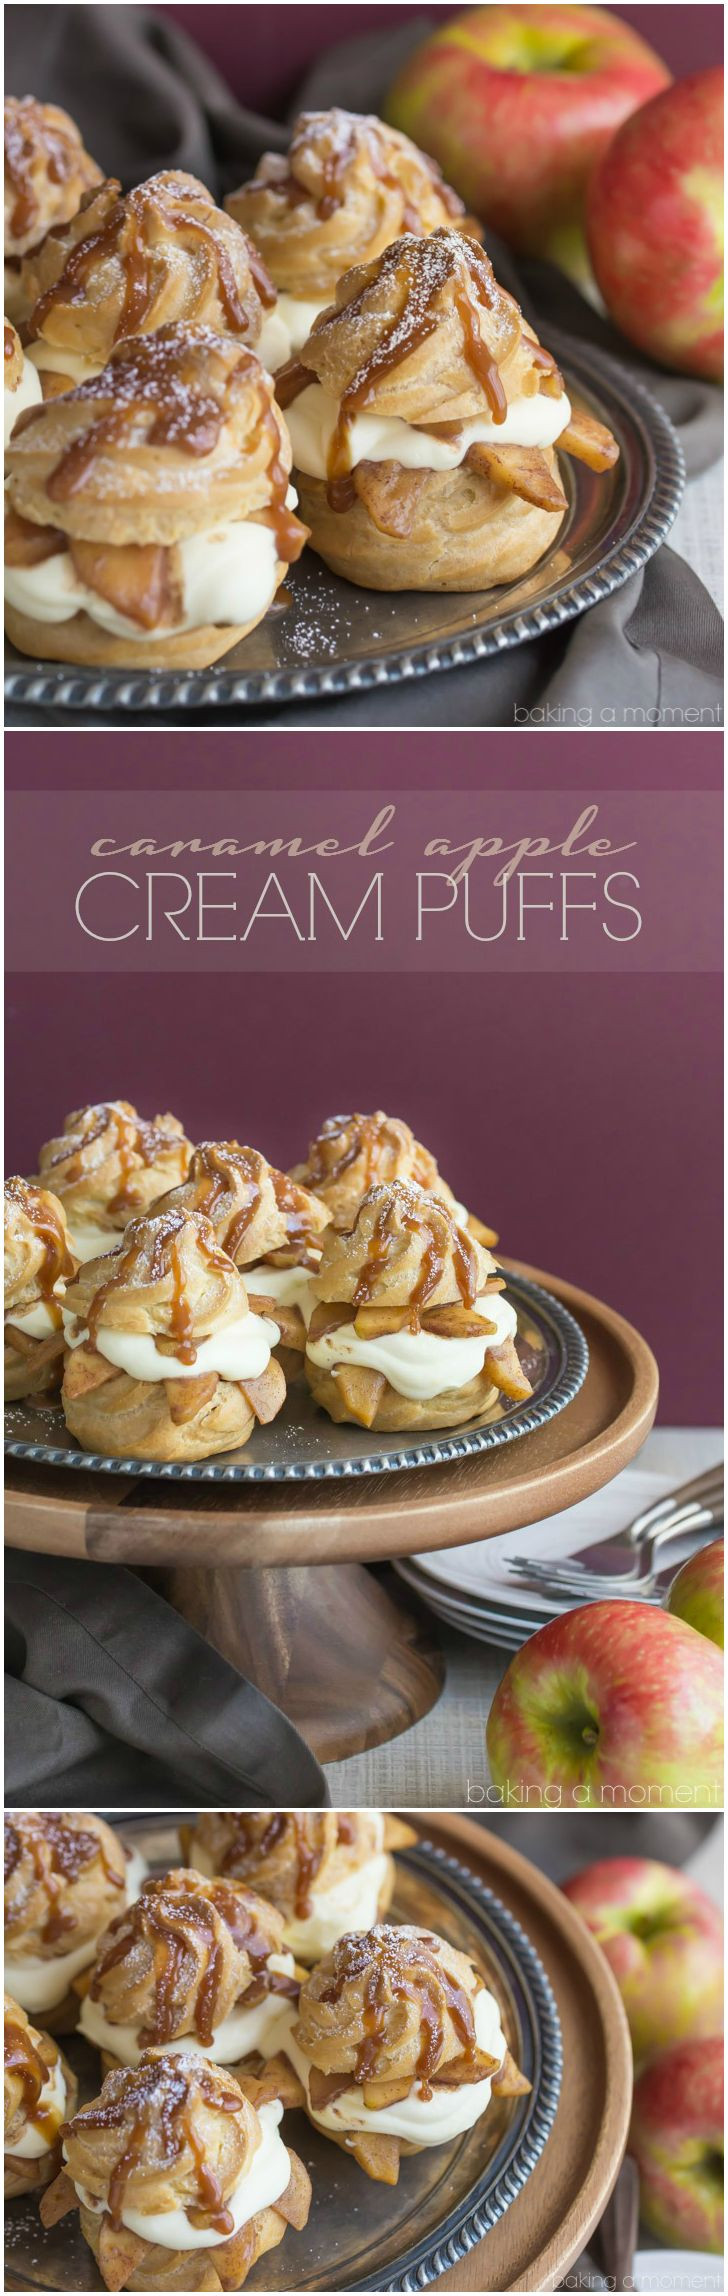 Great Fall Desserts  Best 25 Recipe for cream puffs ideas on Pinterest